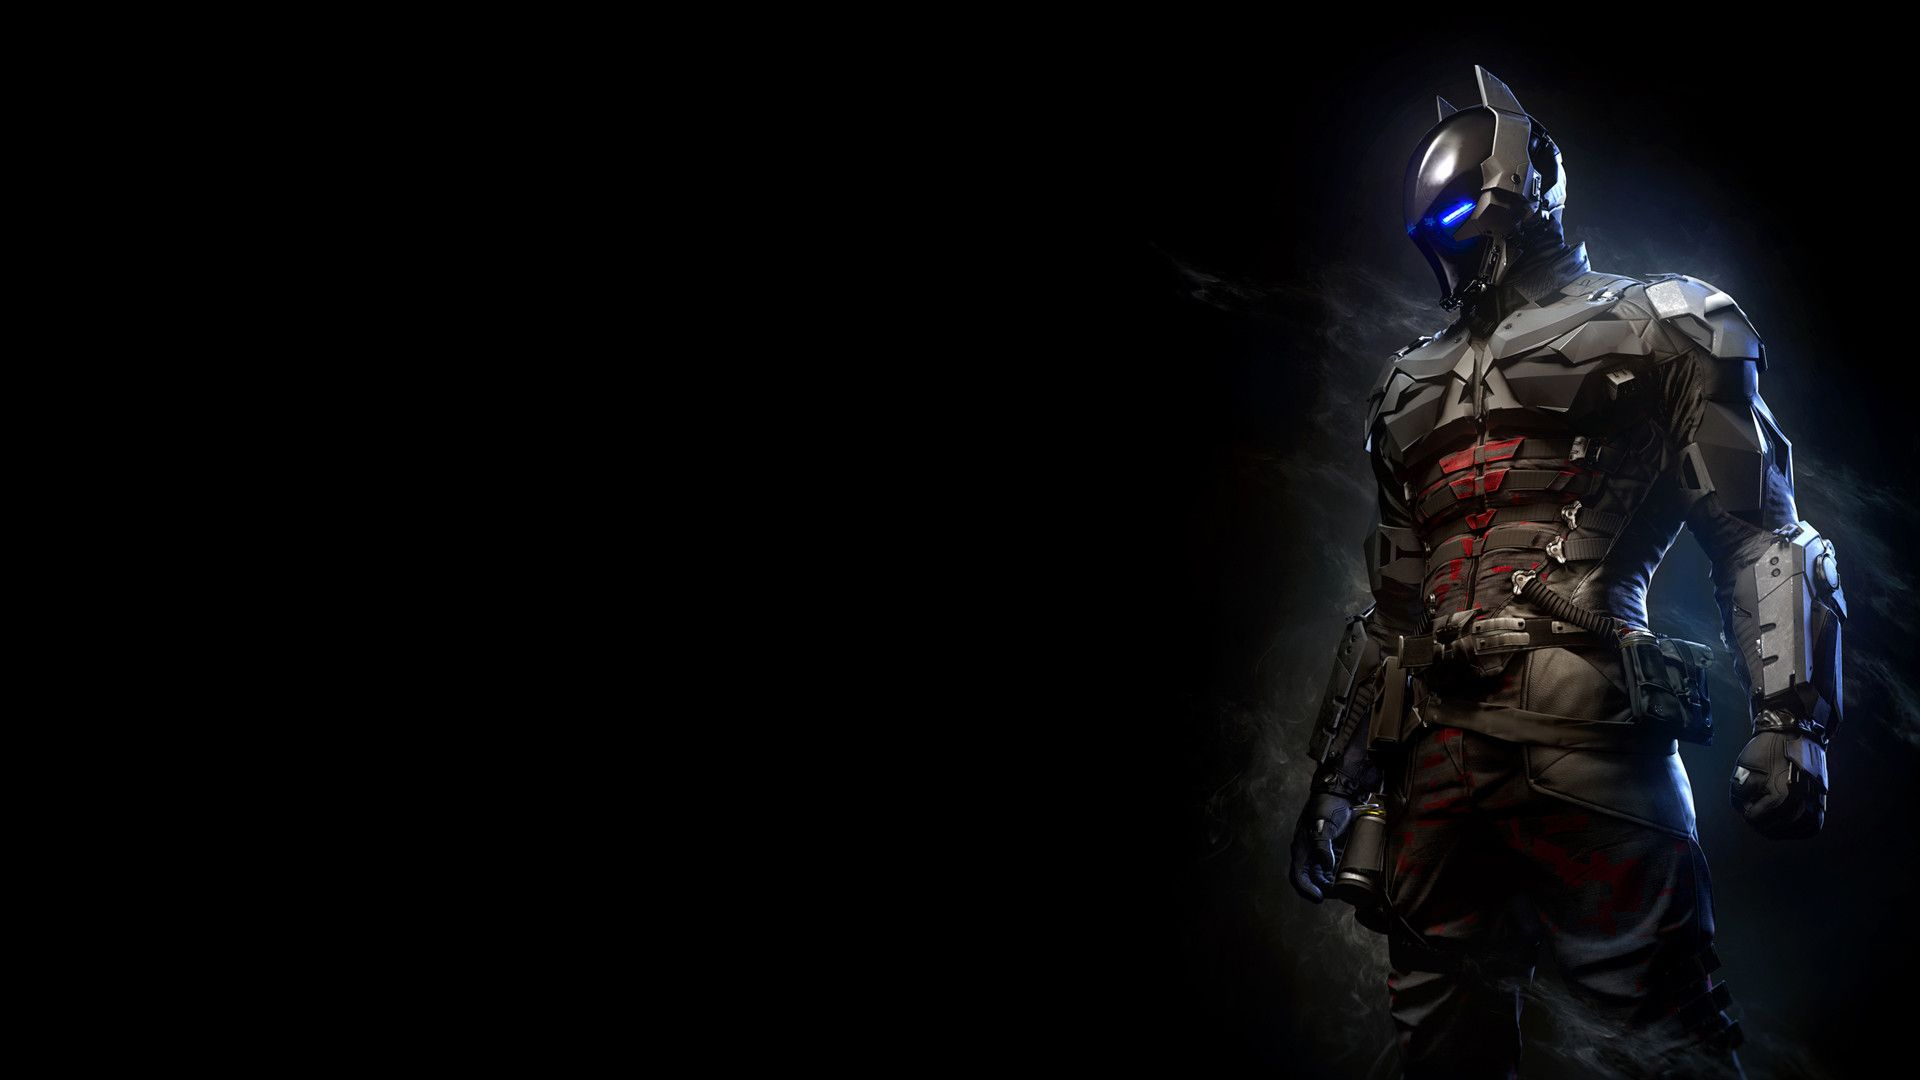 Ultra Hd Gaming Wallpapers Top Free Ultra Hd Gaming Backgrounds